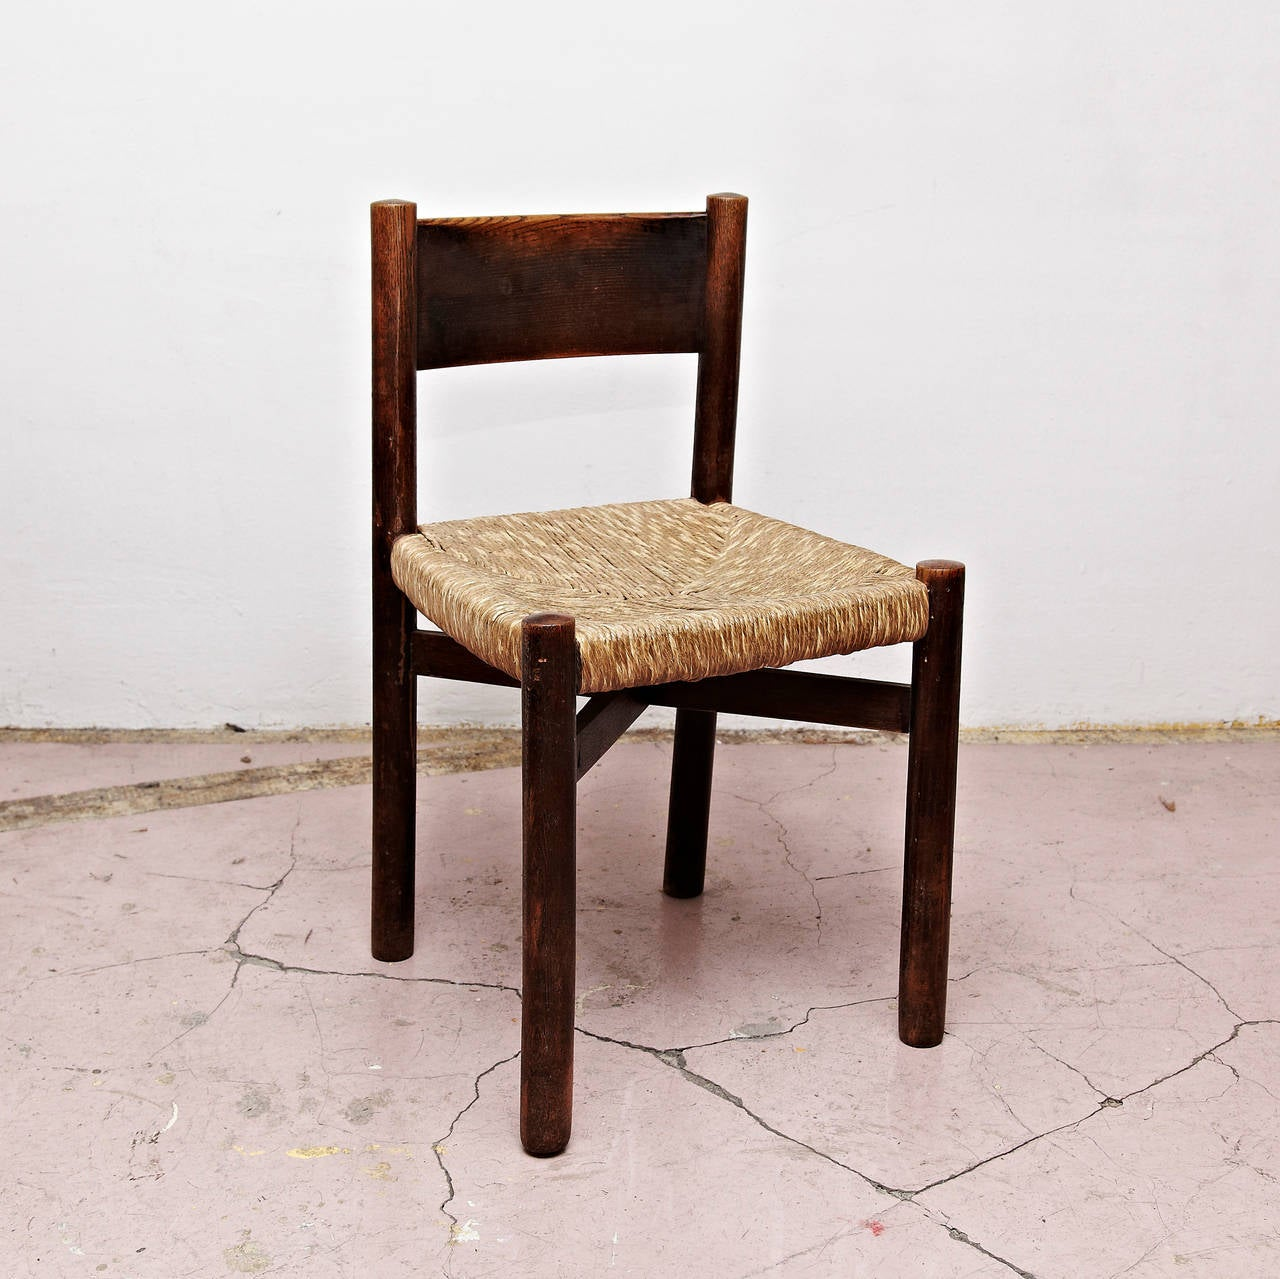 Set of Five Charlotte Perriand Meribel Chair, circa 1950 In Good Condition For Sale In Barcelona, Barcelona